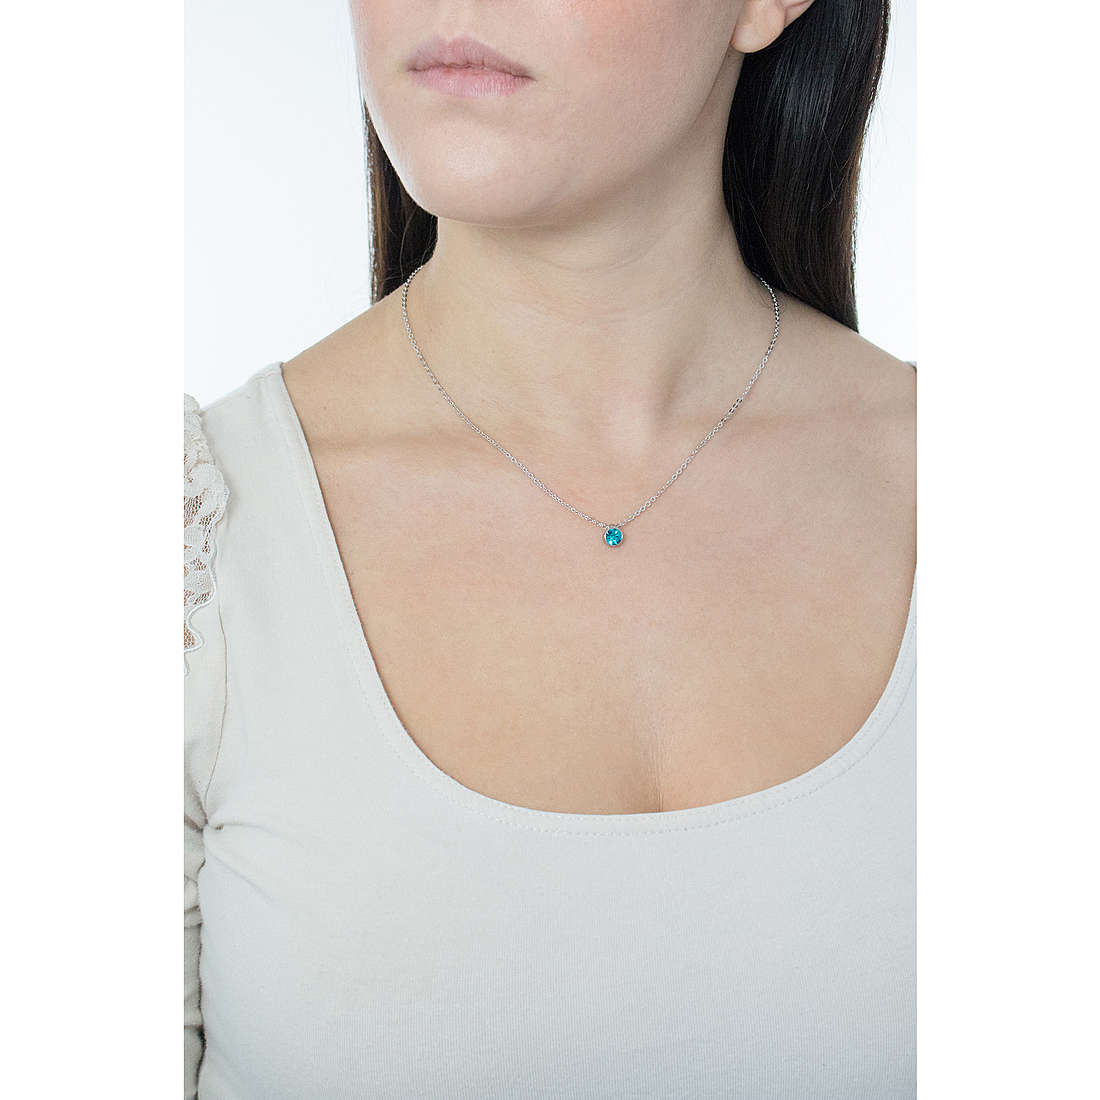 Luca Barra necklaces woman LBCK695 photo wearing